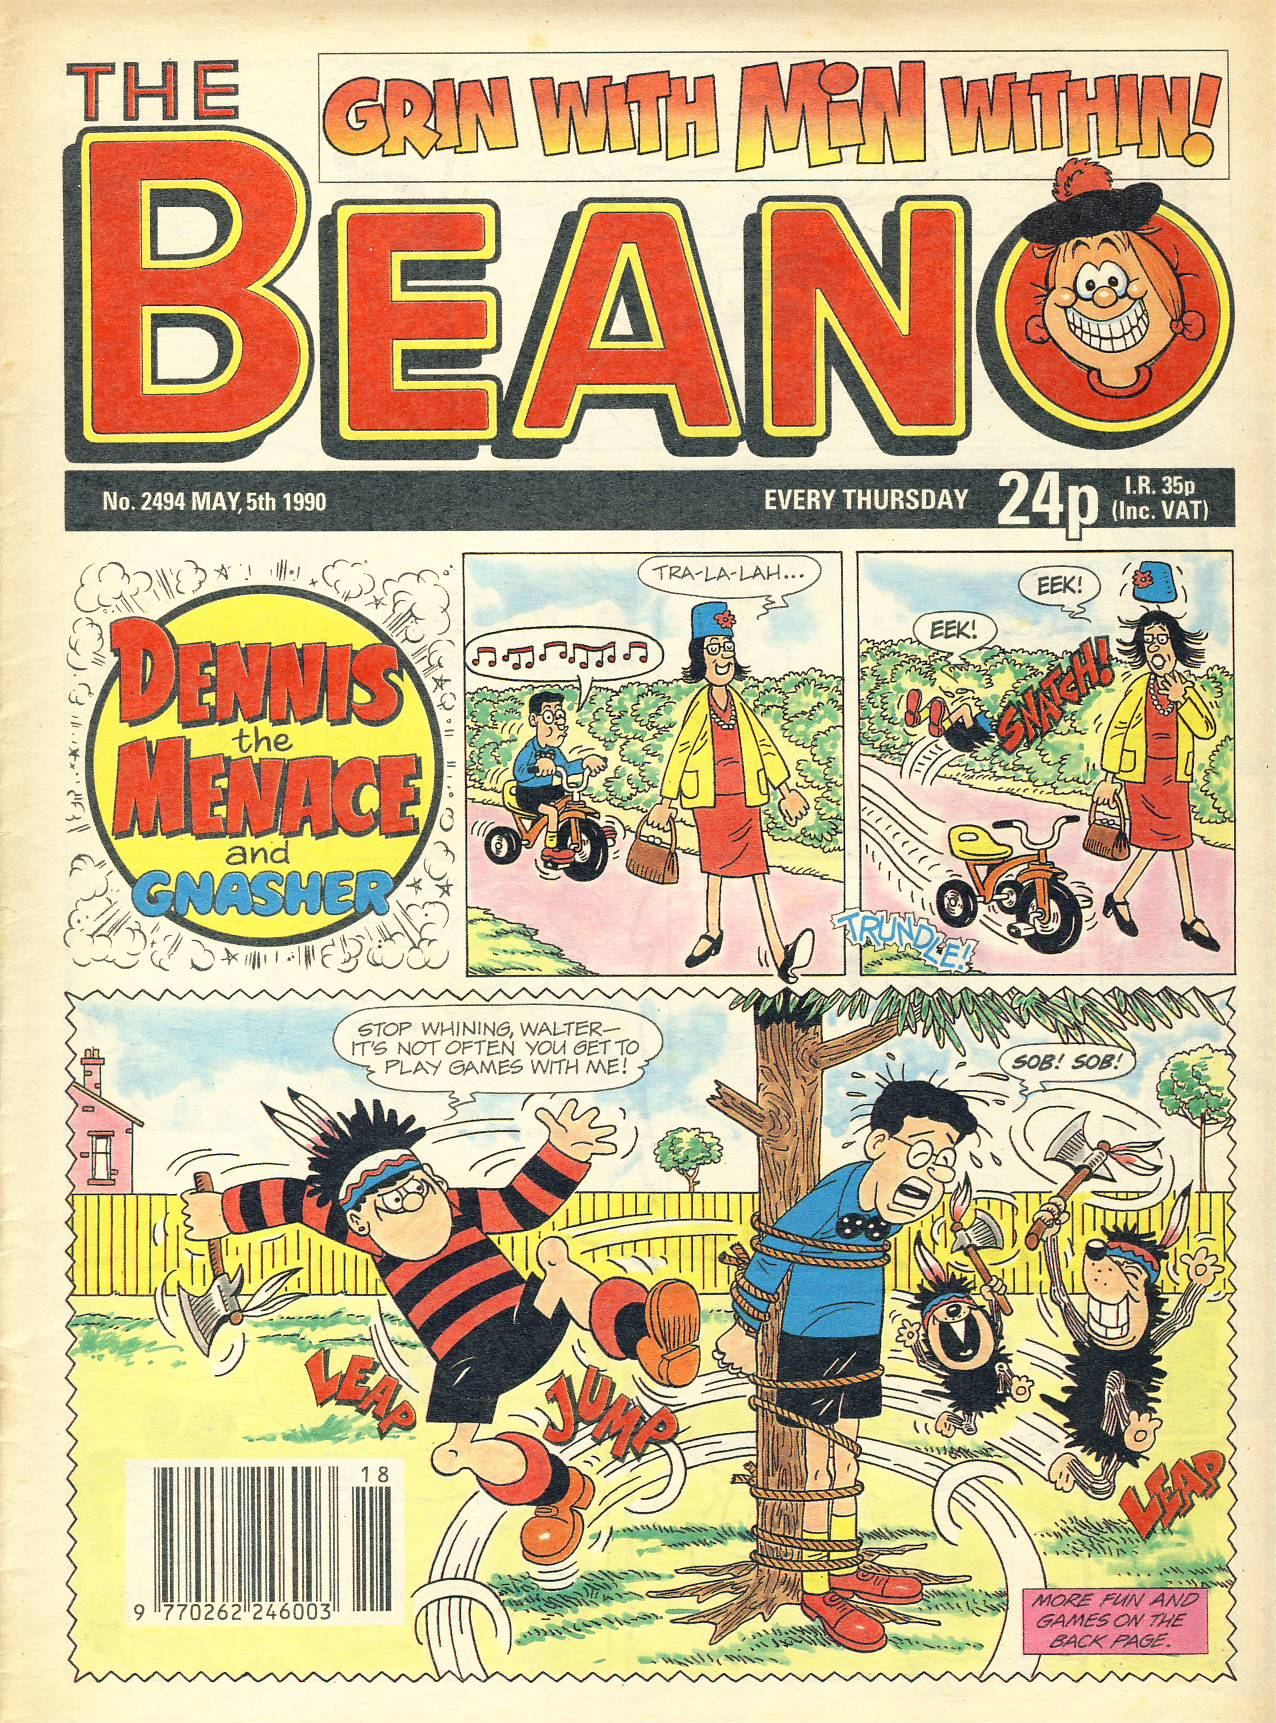 1990 May 5th BEANO vintage comic Good Gift Christmas Present Birthday Anniversary ref301a pre-owned item in good read condition.